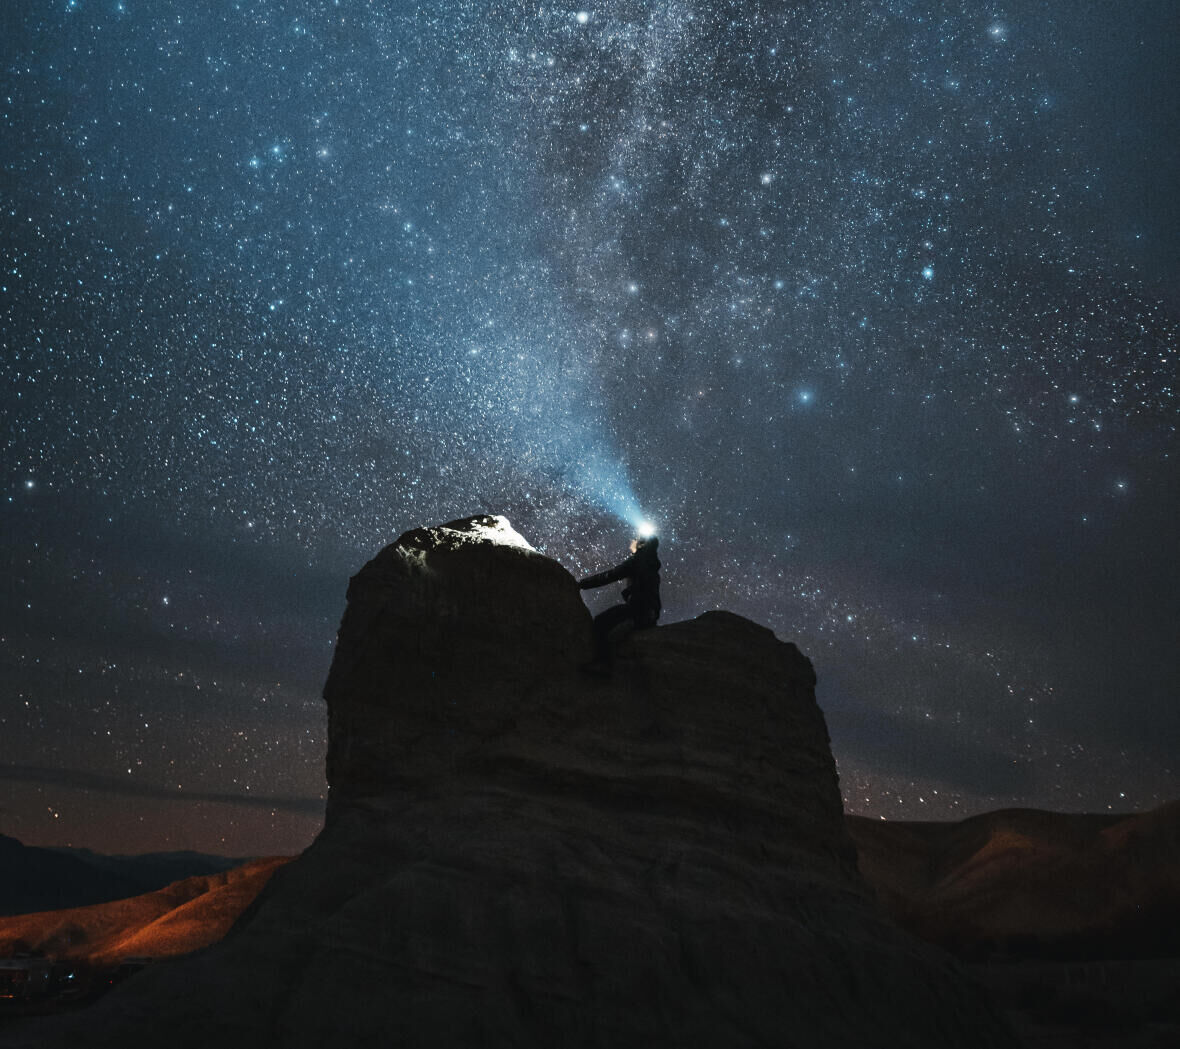 THE NIGHTS OF THE STARS